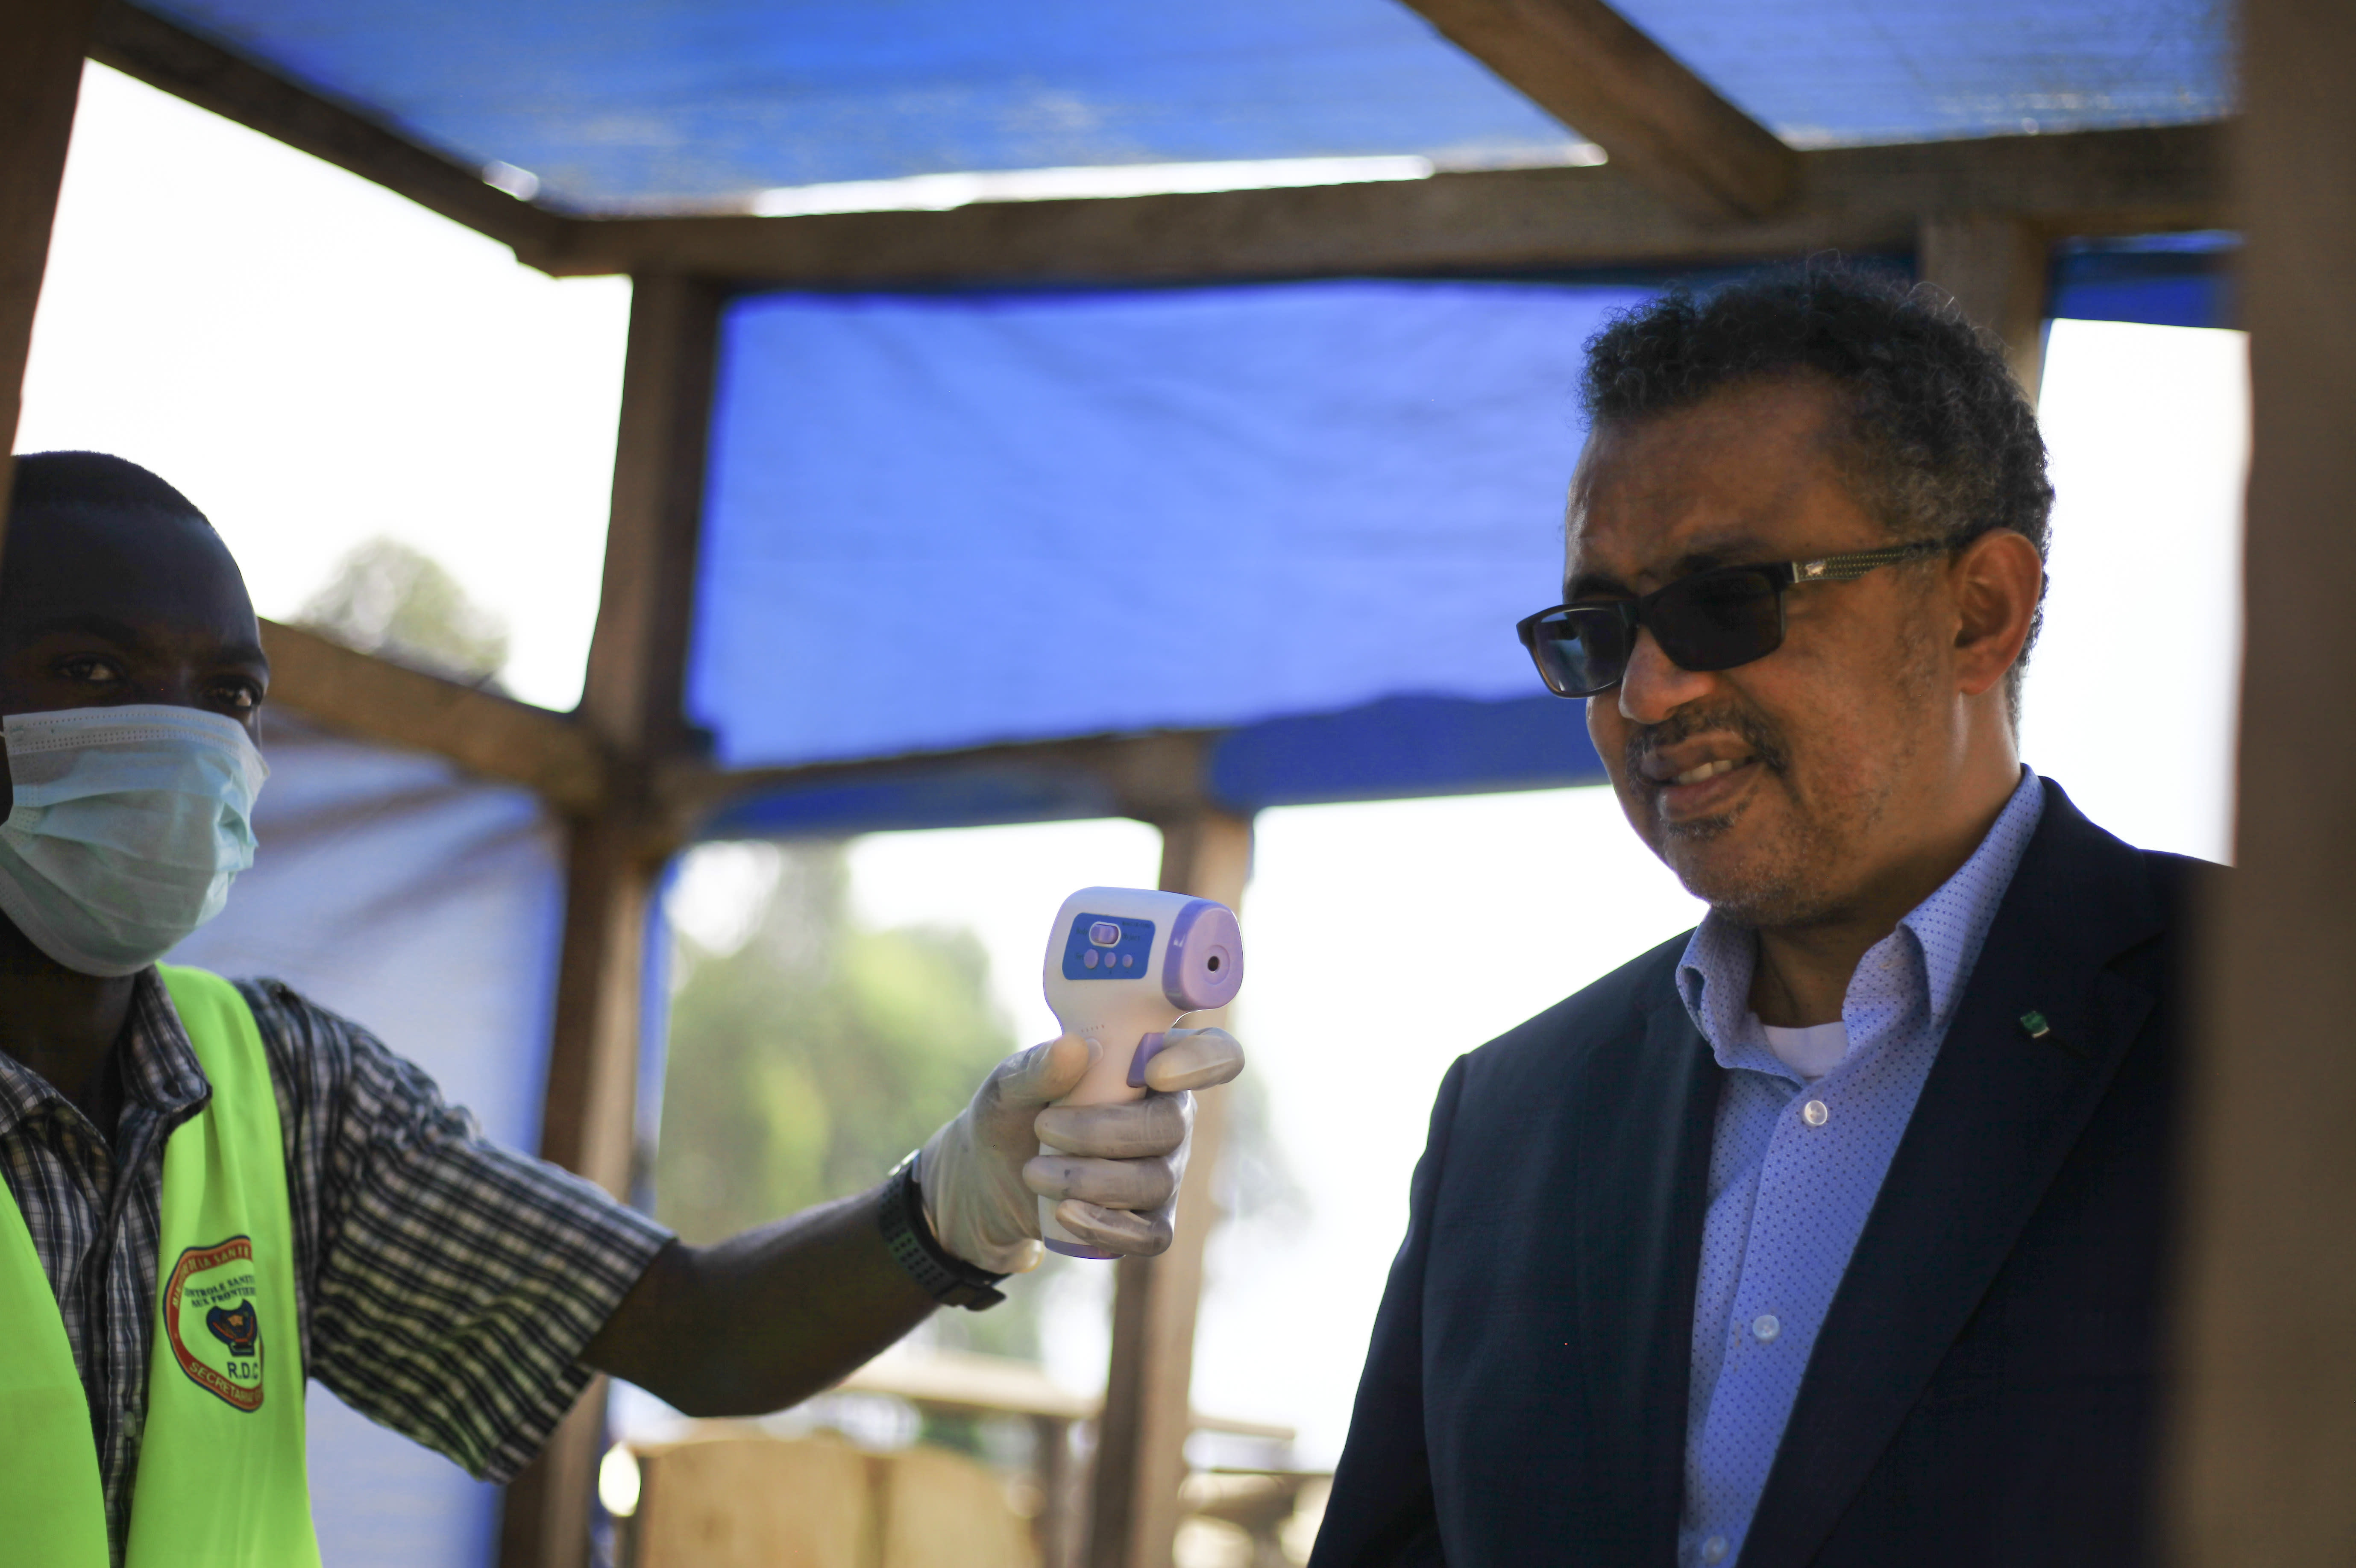 "Director-General of the World Health Organization (WHO), Tedros Adhanom Ghebreyesus, right, has his temperature taken as he arrives at Ruhenda airport in Butembo, to visit operations aimed at preventing the spread of Ebola and treating its victims, in eastern Congo Saturday, June 15, 2019. The World Health Organization on Friday said the Ebola outbreak is an ""extraordinary event"" of deep concern but does not yet merit being declared a global emergency, a declaration that typically triggers more funding, resources and political attention. (AP Photo/Al-hadji Kudra Maliro)"